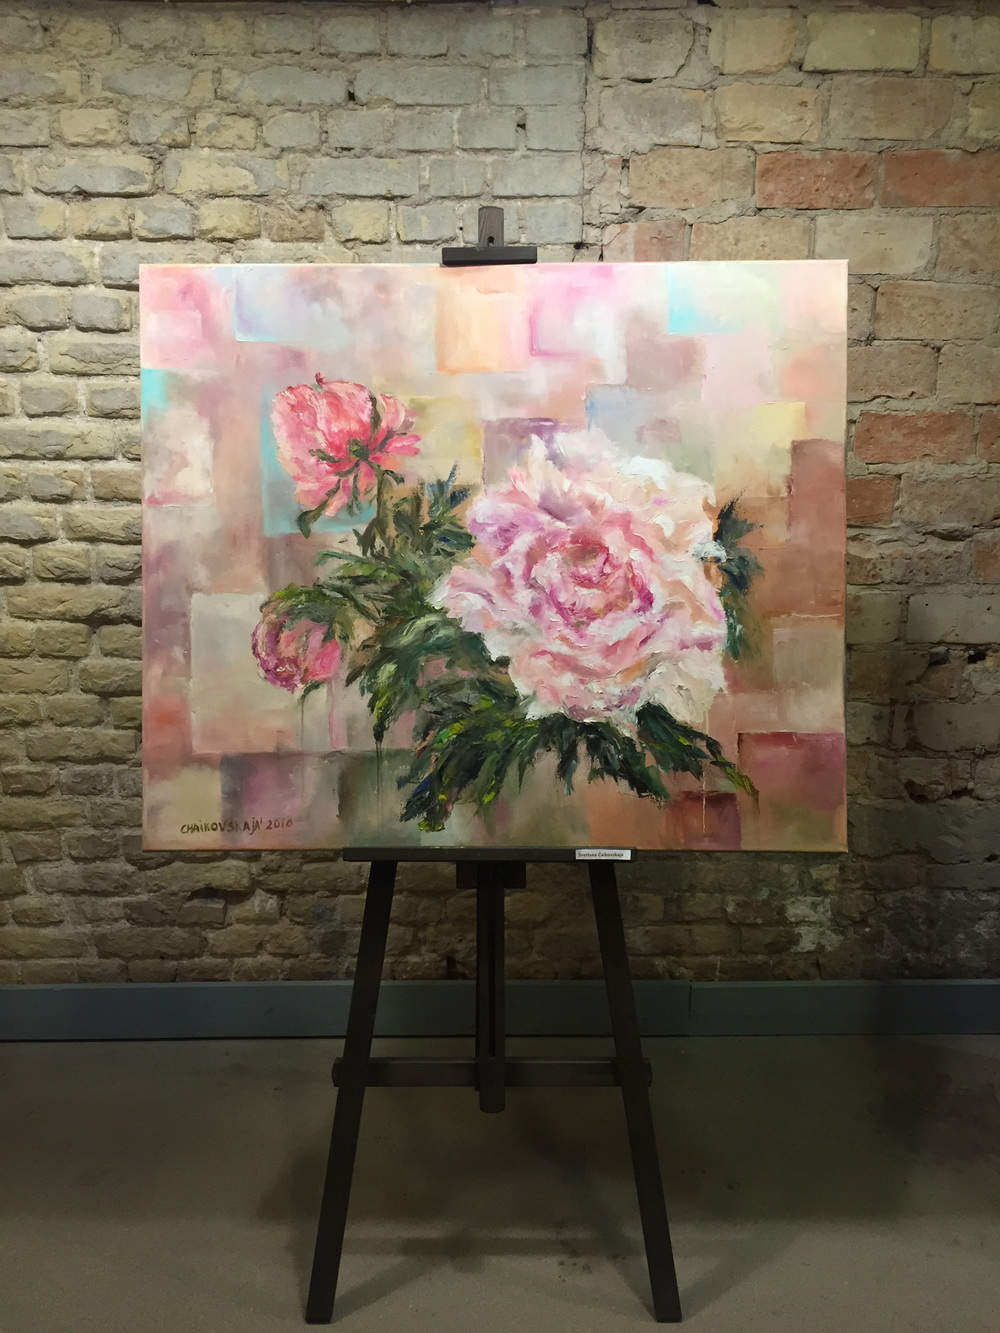 Through pink glasses 2 – Exhibition